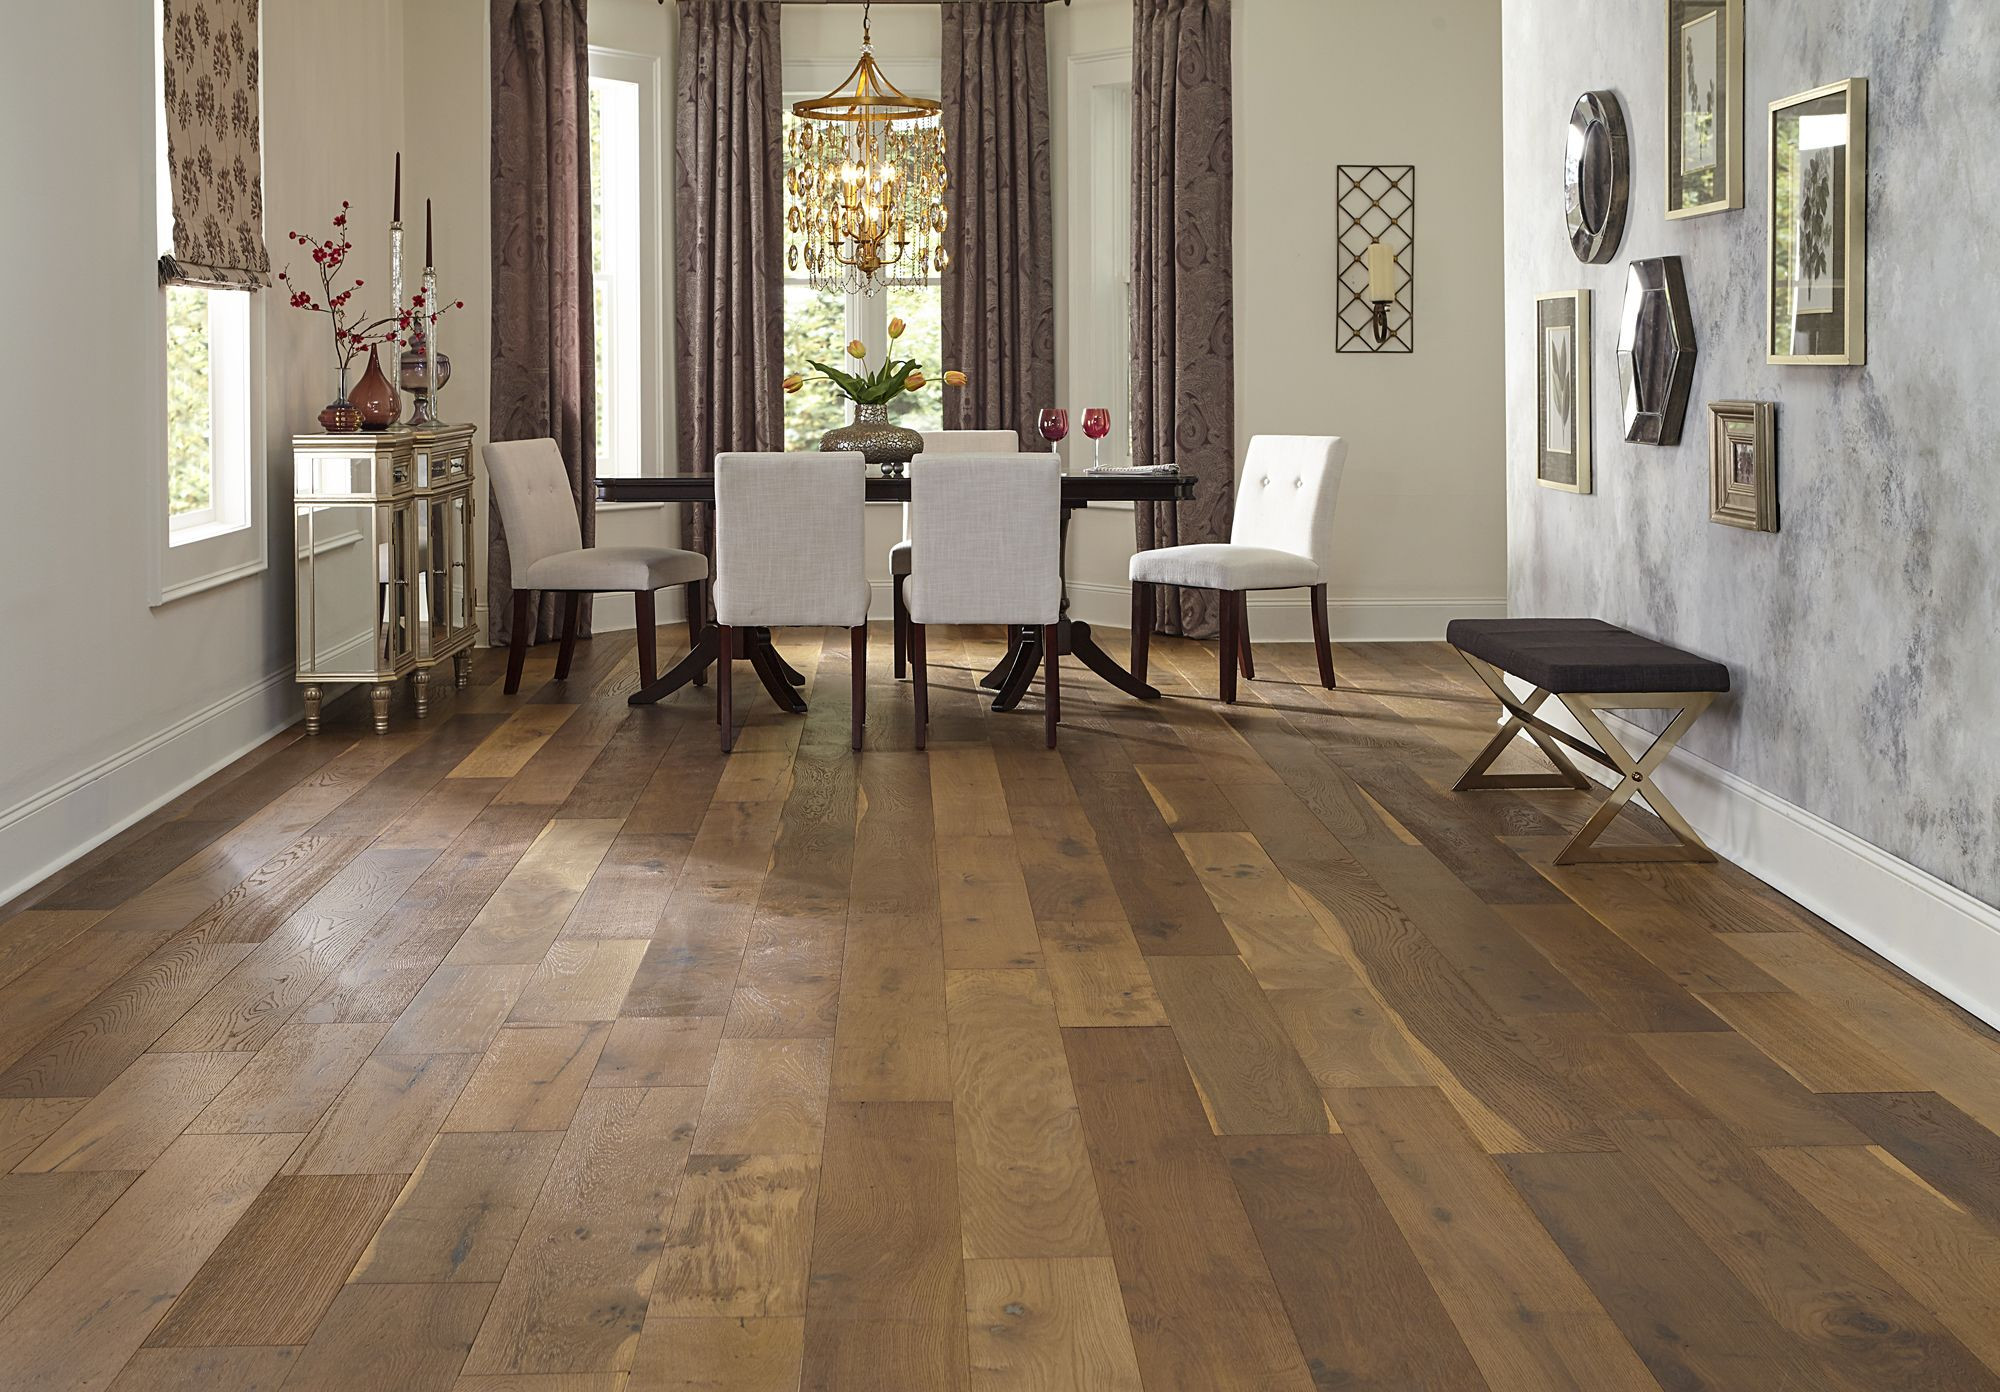 acacia hardwood flooring reviews of 7 1 2 wide planks and a rustic look bellawood willow manor oak has throughout 7 1 2 wide planks and a rustic look bellawood willow manor oak has a storied old world appearance